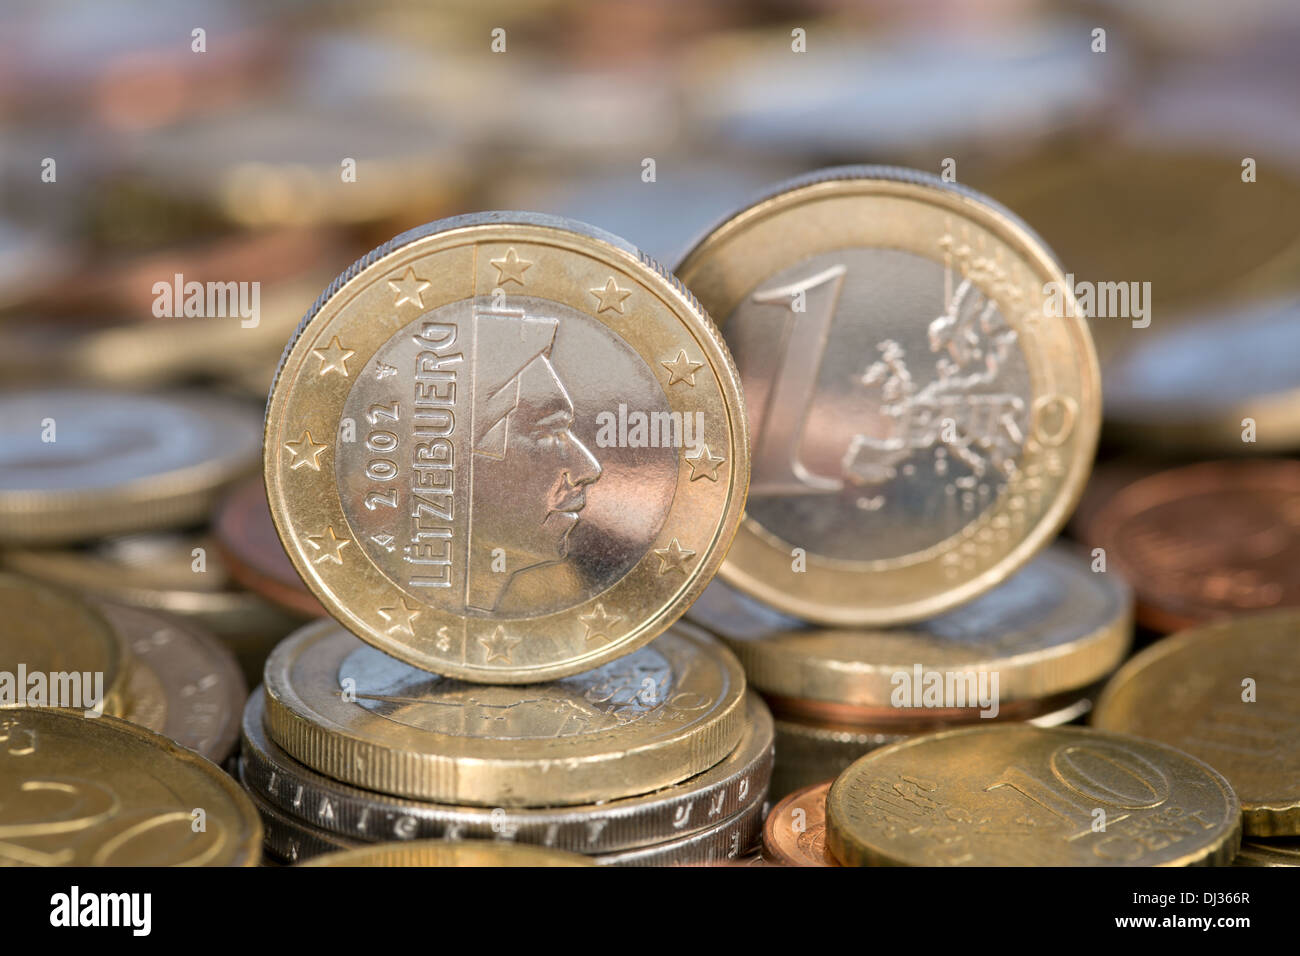 A one Euro coin from the EU member country Luxembourg - Stock Image